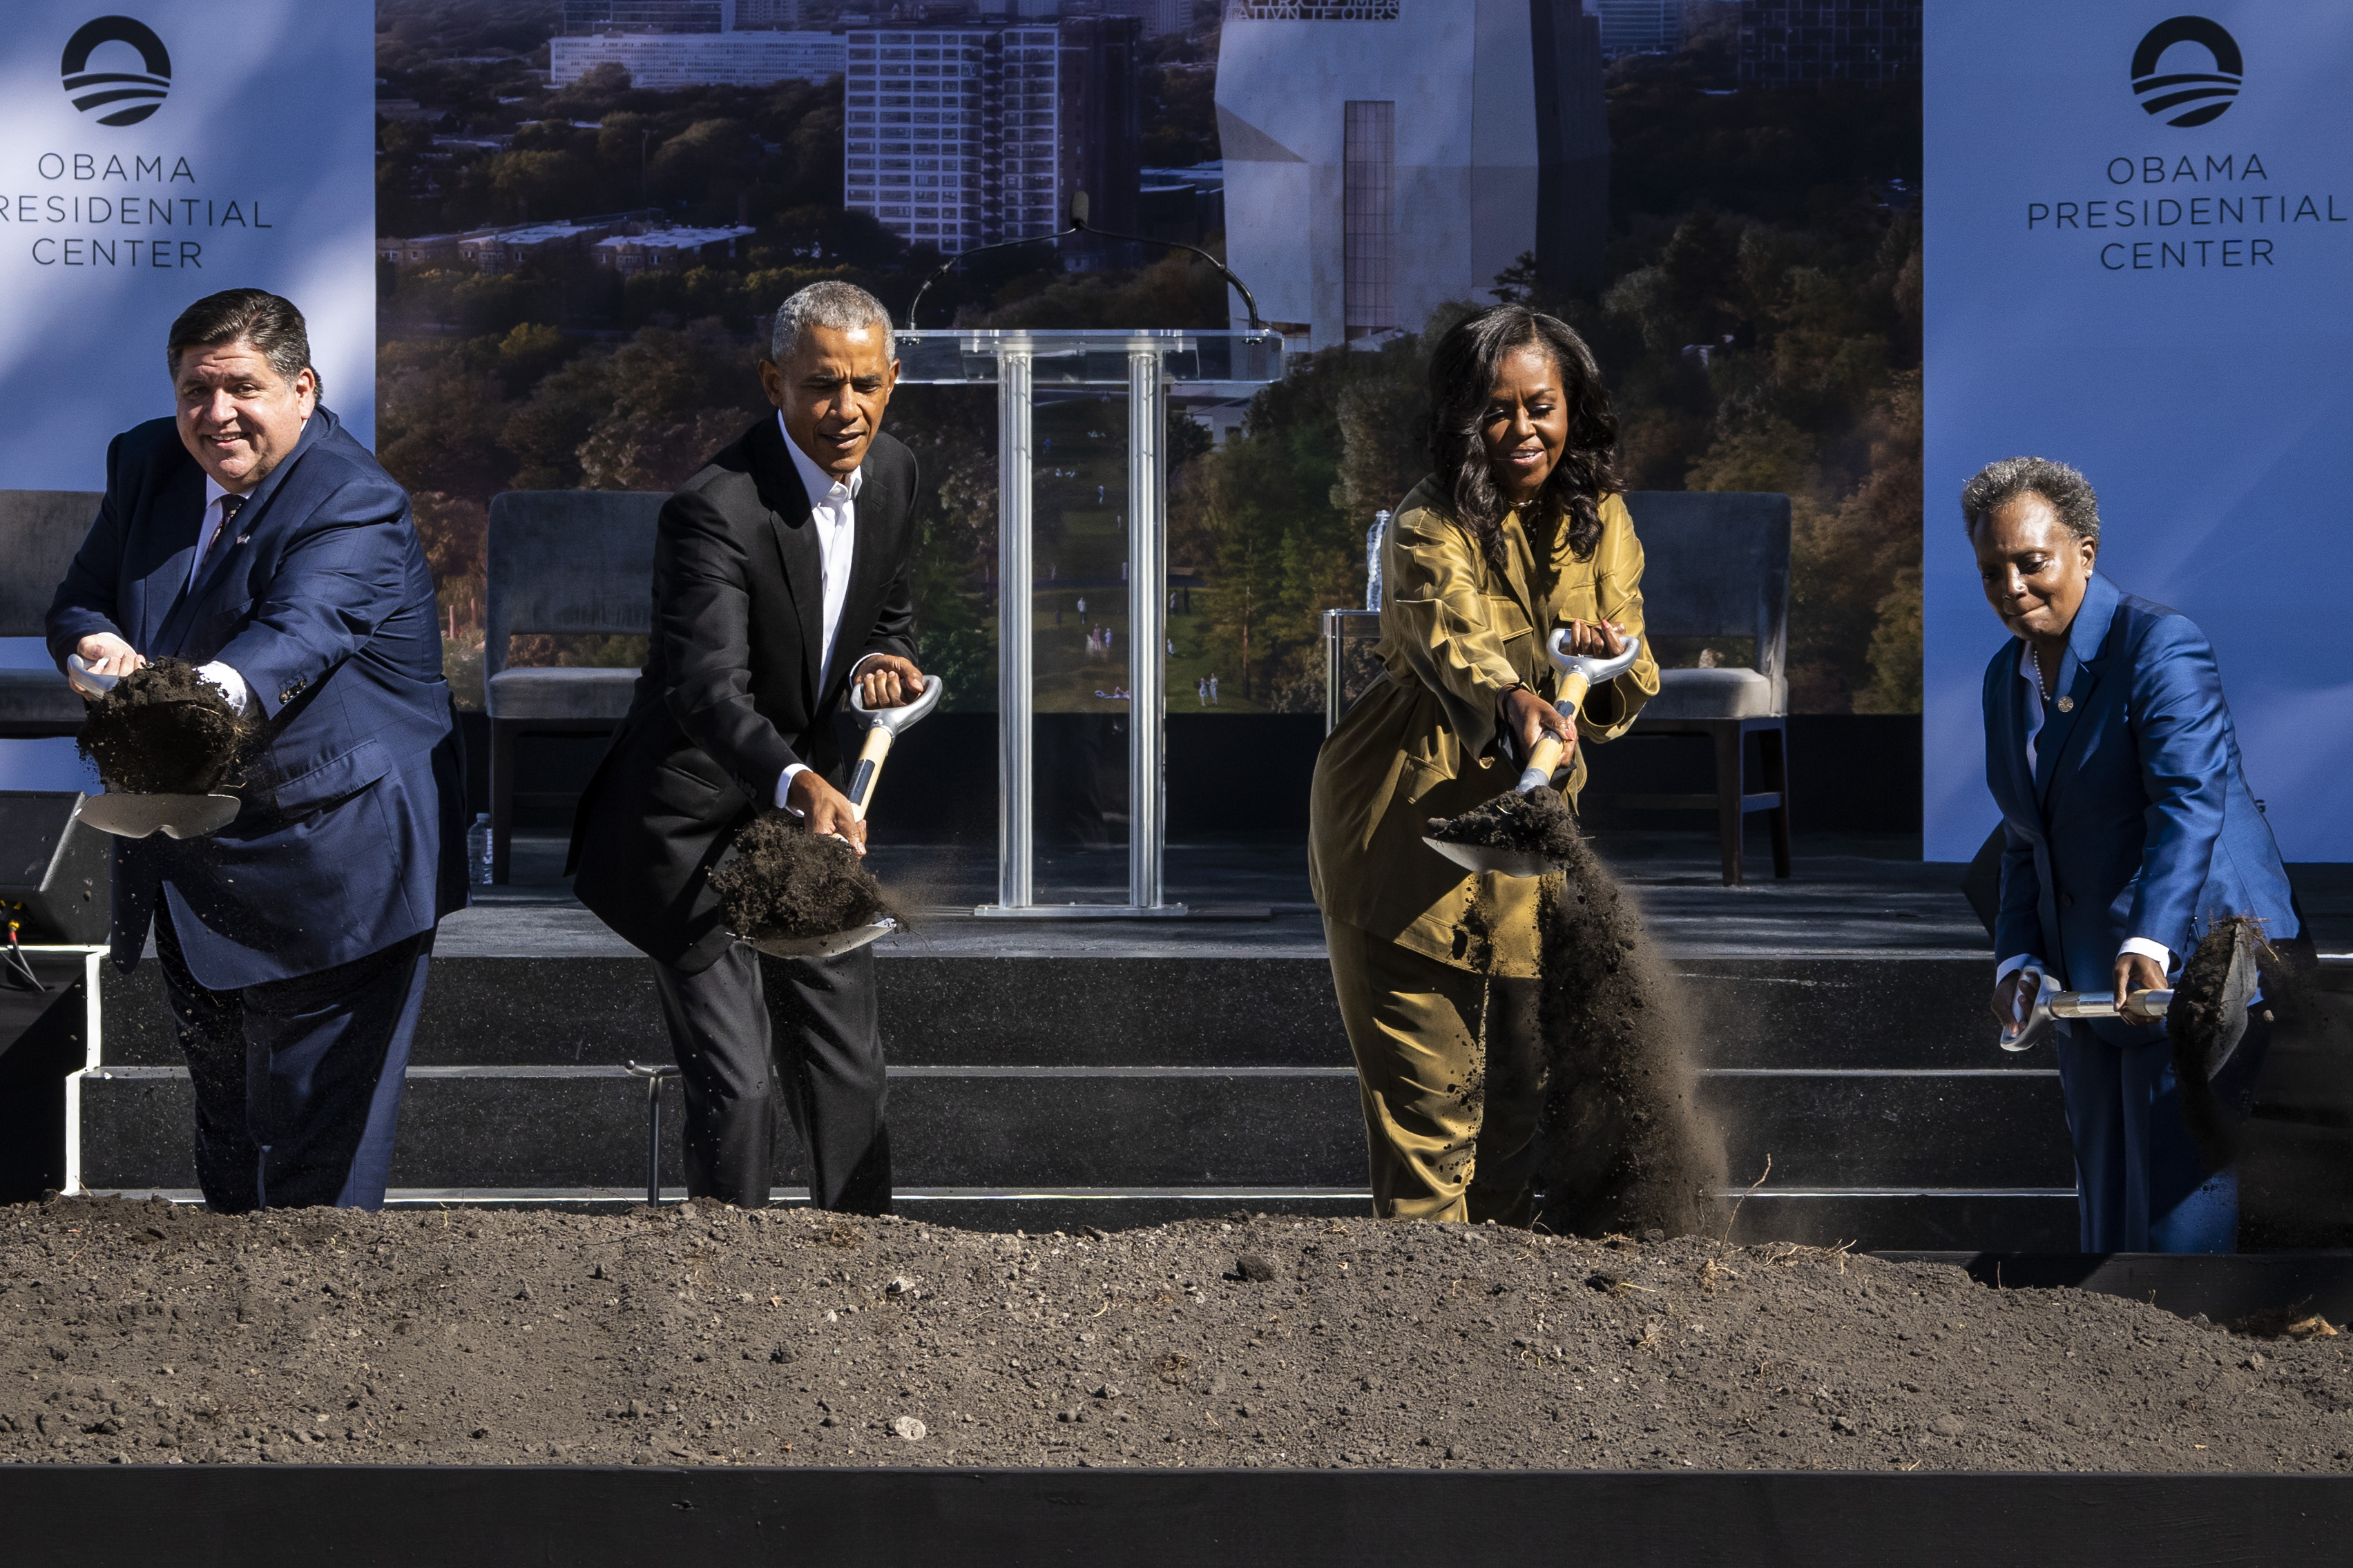 Former President Barack Obama and first lady Michelle Obama, center, break ground for the Obama Presidential Center in Jackson Park on Tuesday, with Gov. J.B. Pritzker and Mayor Lori Lightfoot.